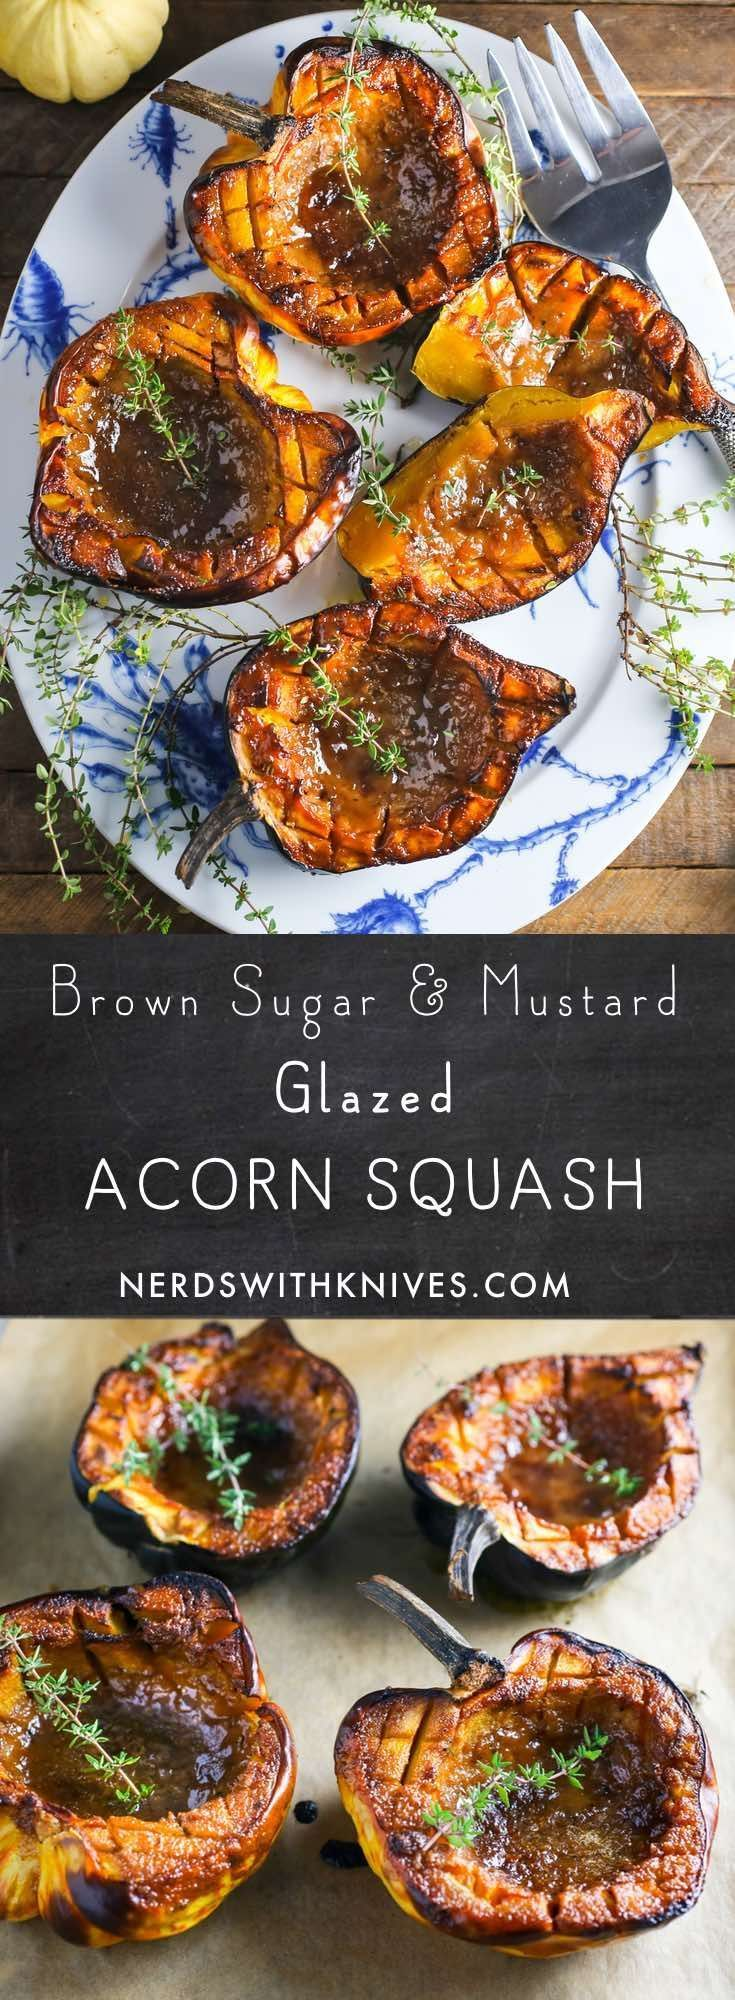 Brown Sugar and Mustard Glazed Acorn Squash. Made on the grill